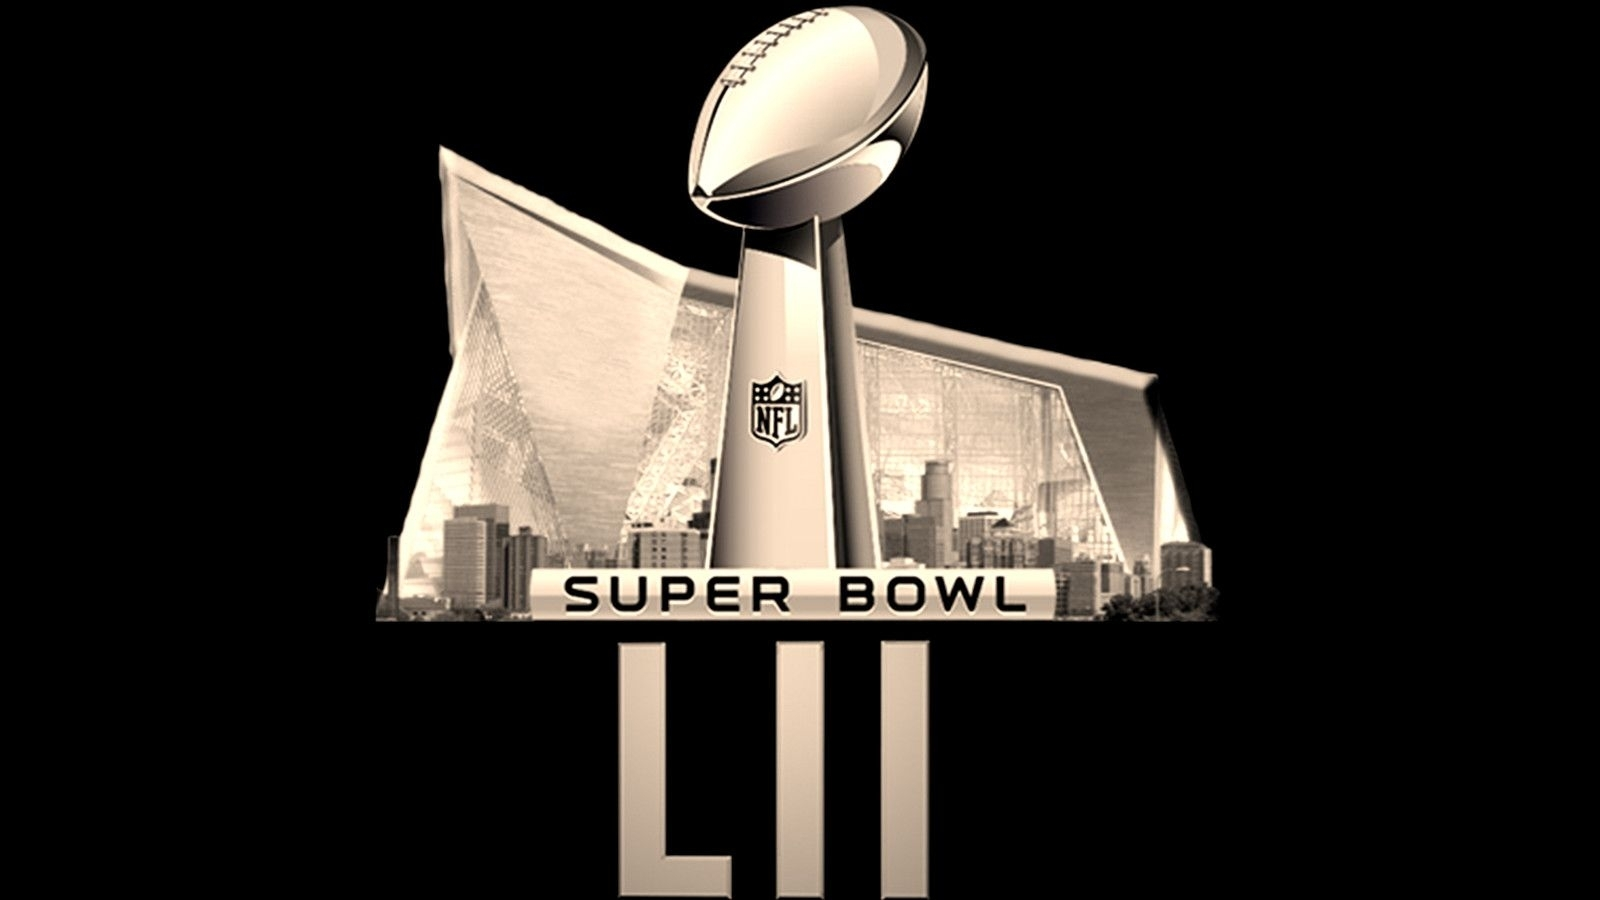 super bowl lii wallpapers - wallpaper cave